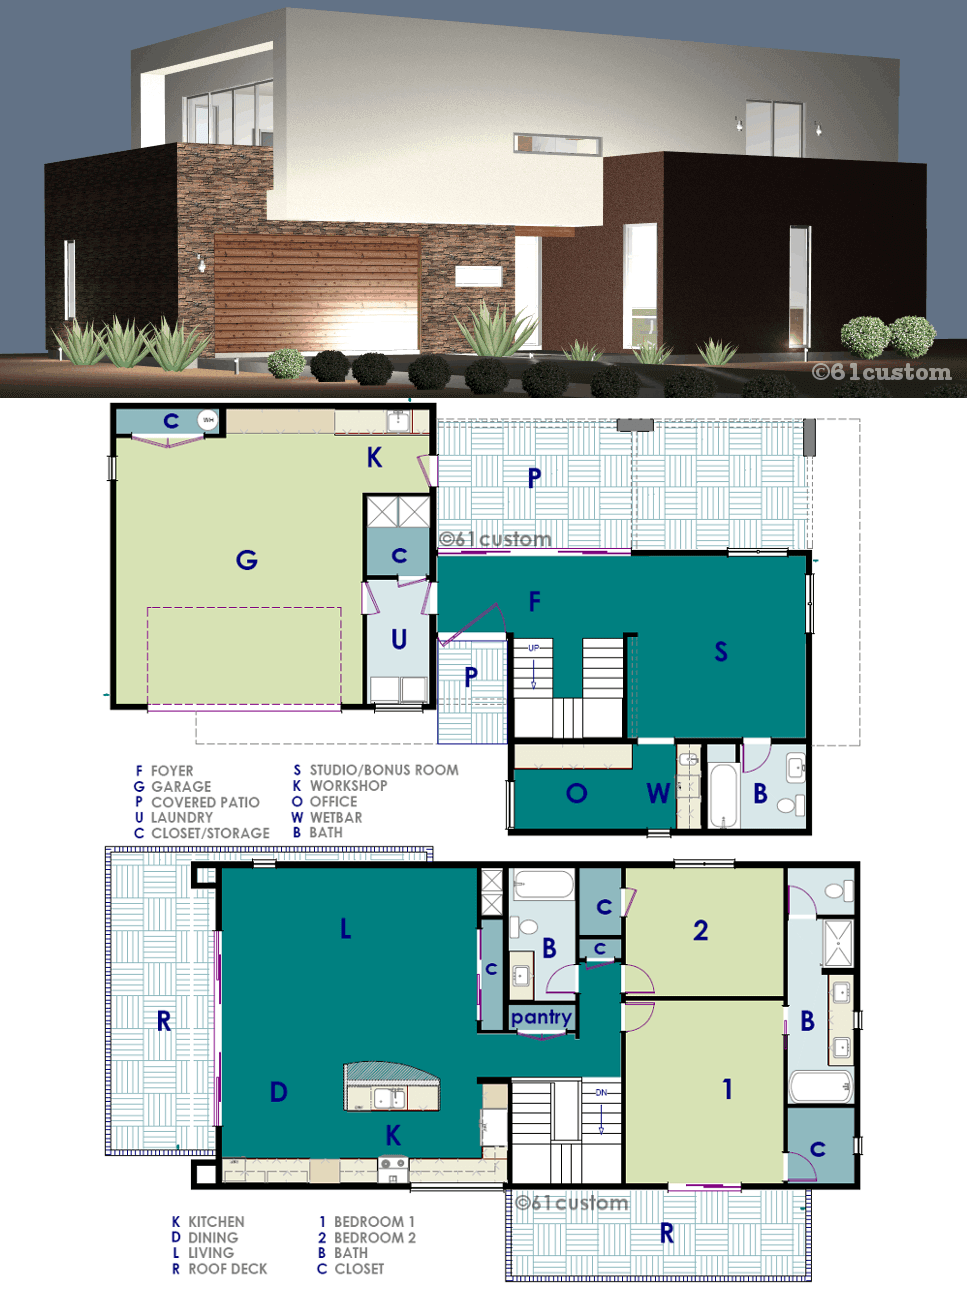 Ultra modern live work house plan 61custom for Contemporary home blueprints